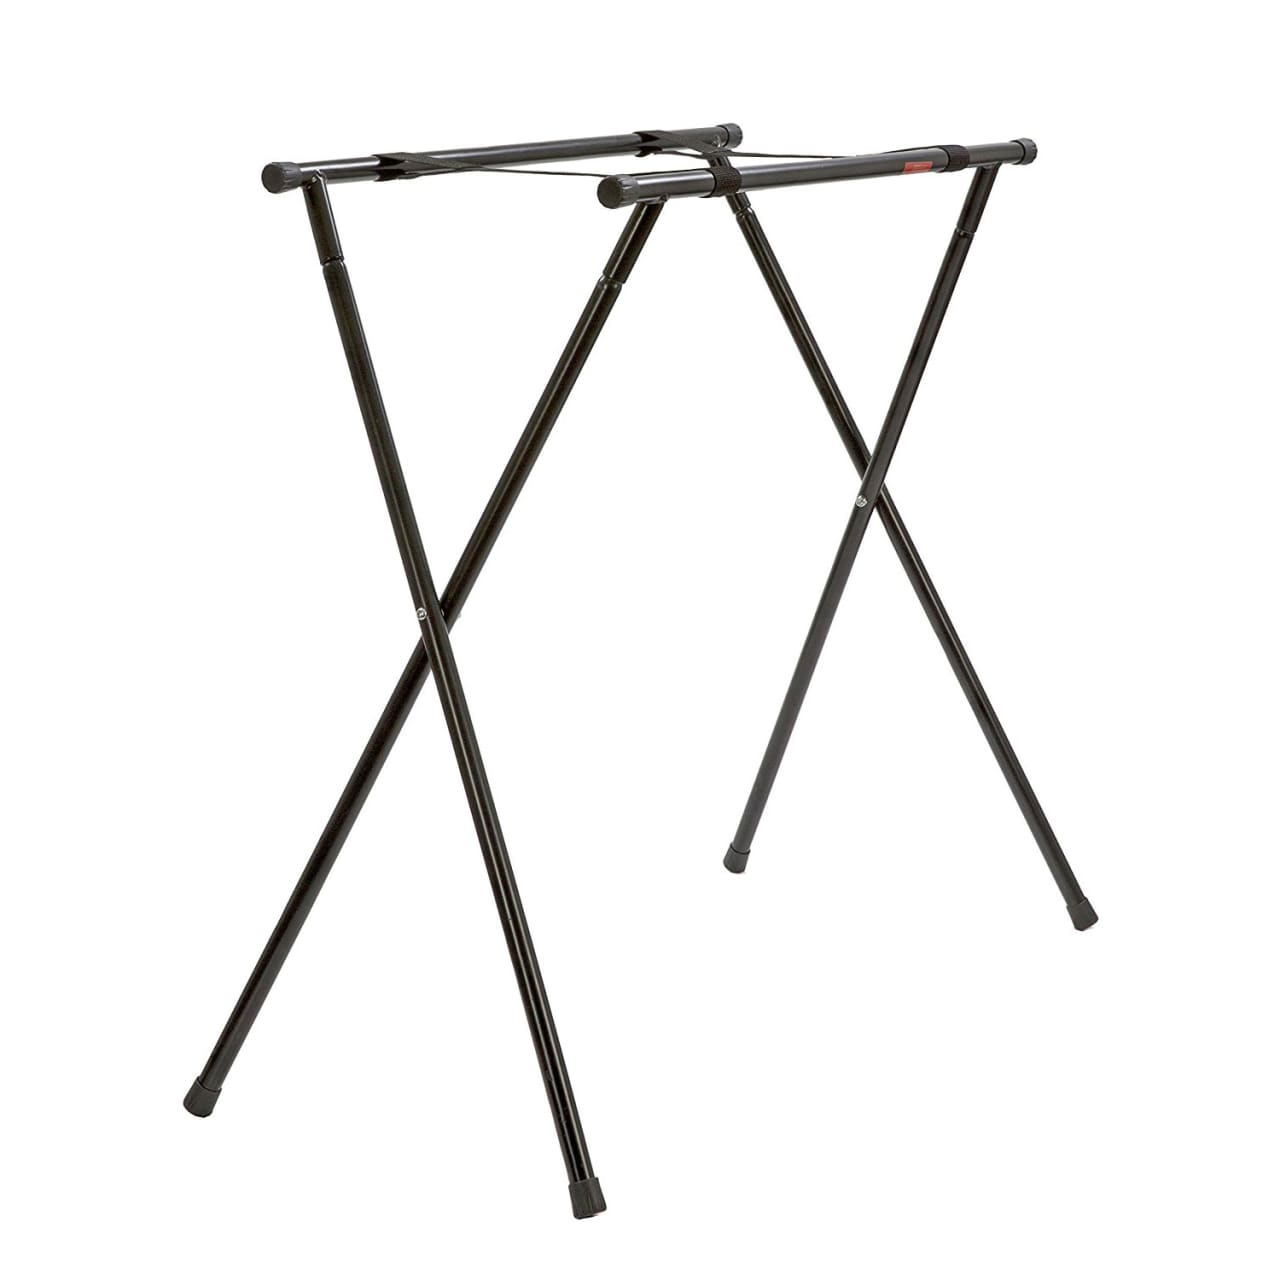 Peavey pv00496340 portable steel construction stand for for Construction stand